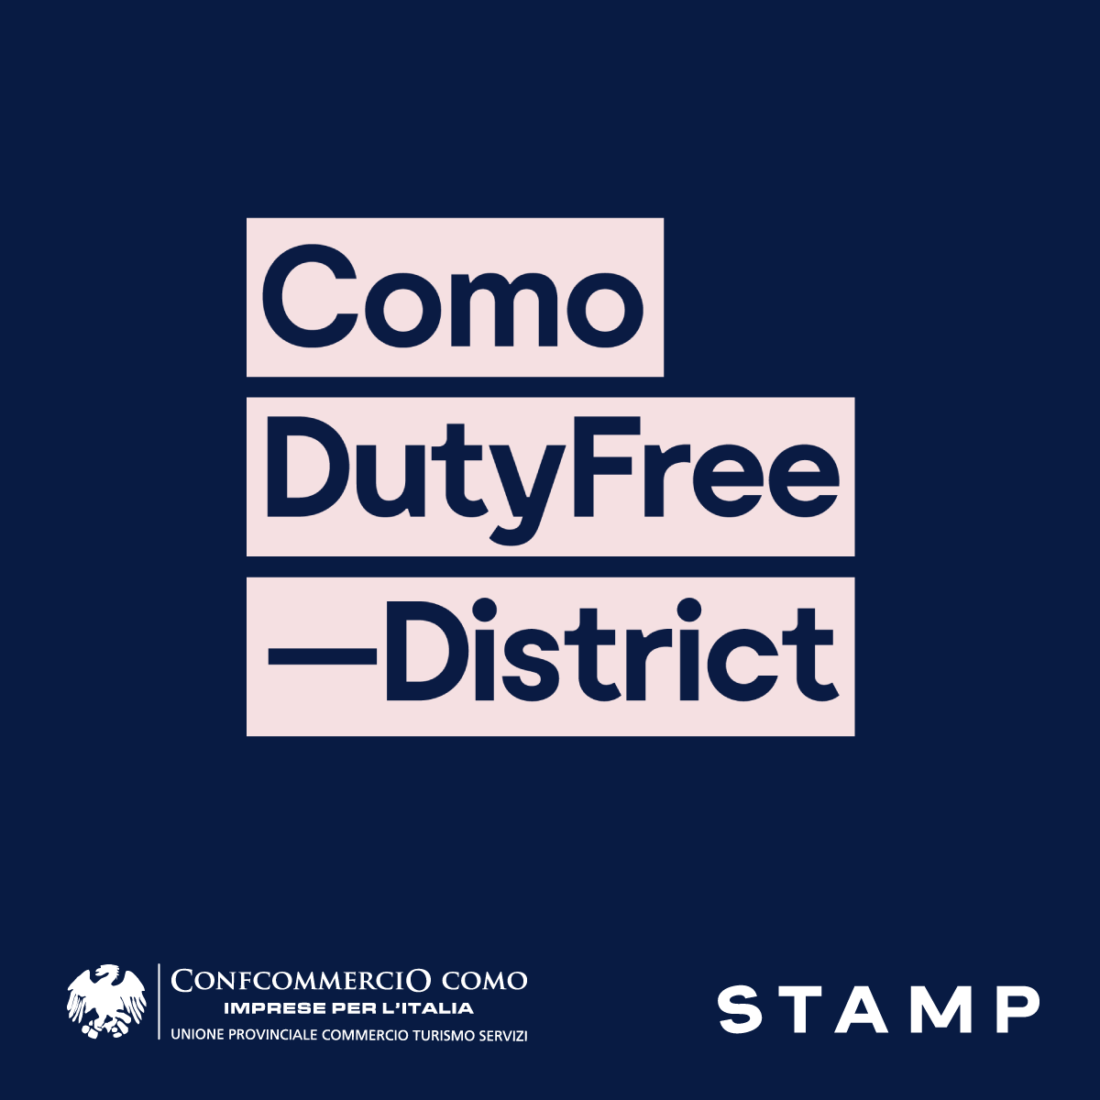 como duty free district